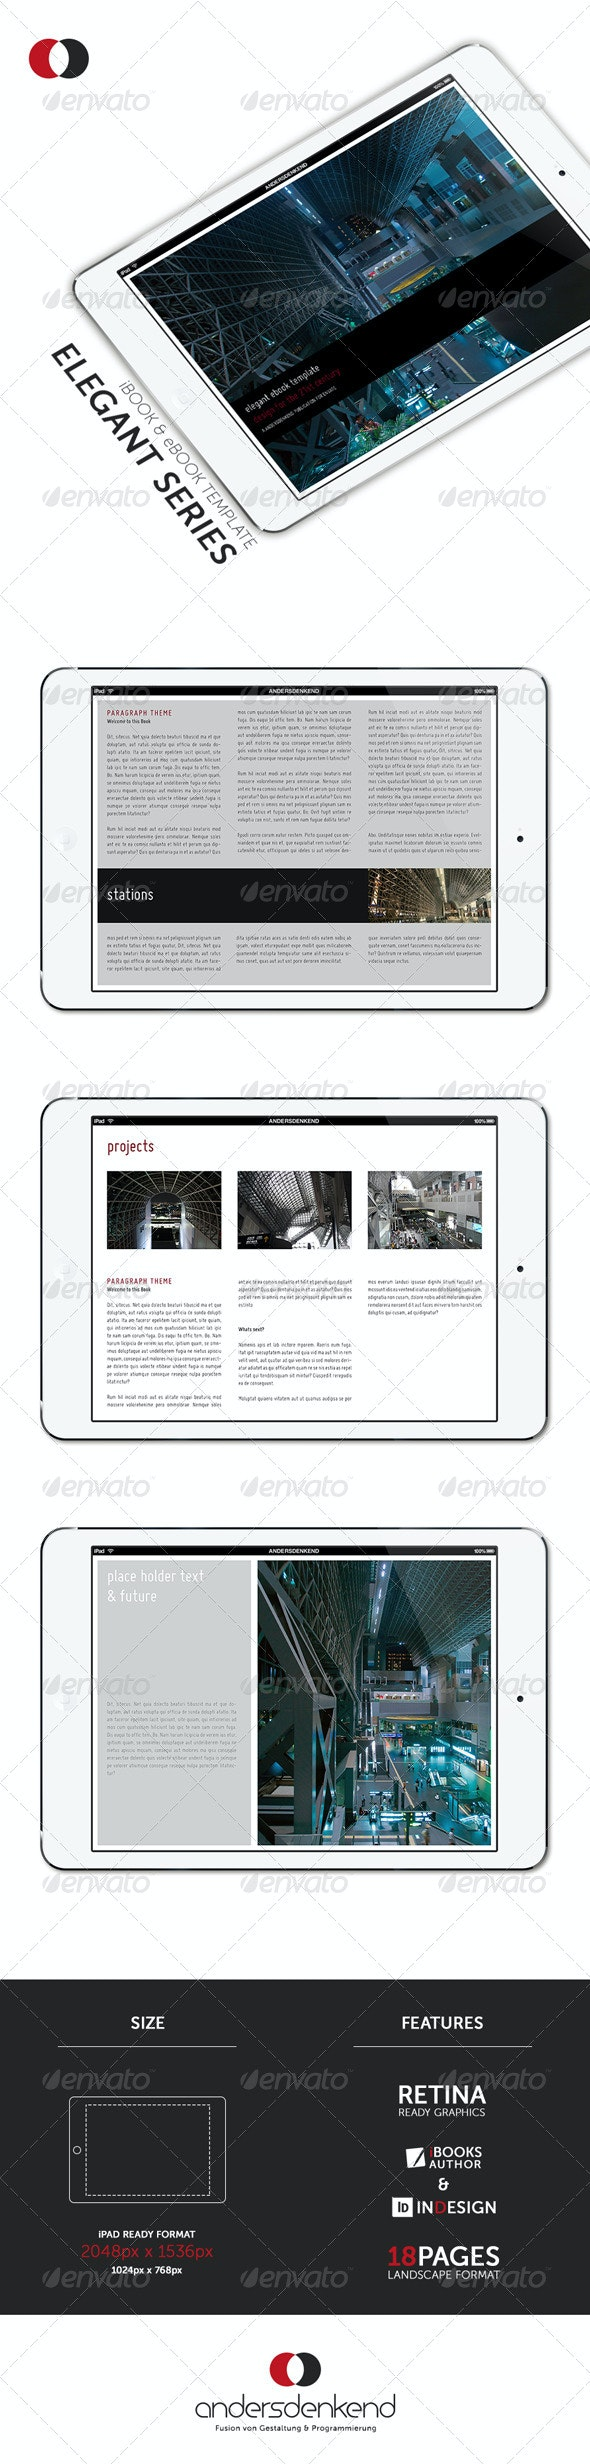 Modern Tablet Template - Vol.1 - ePublishing